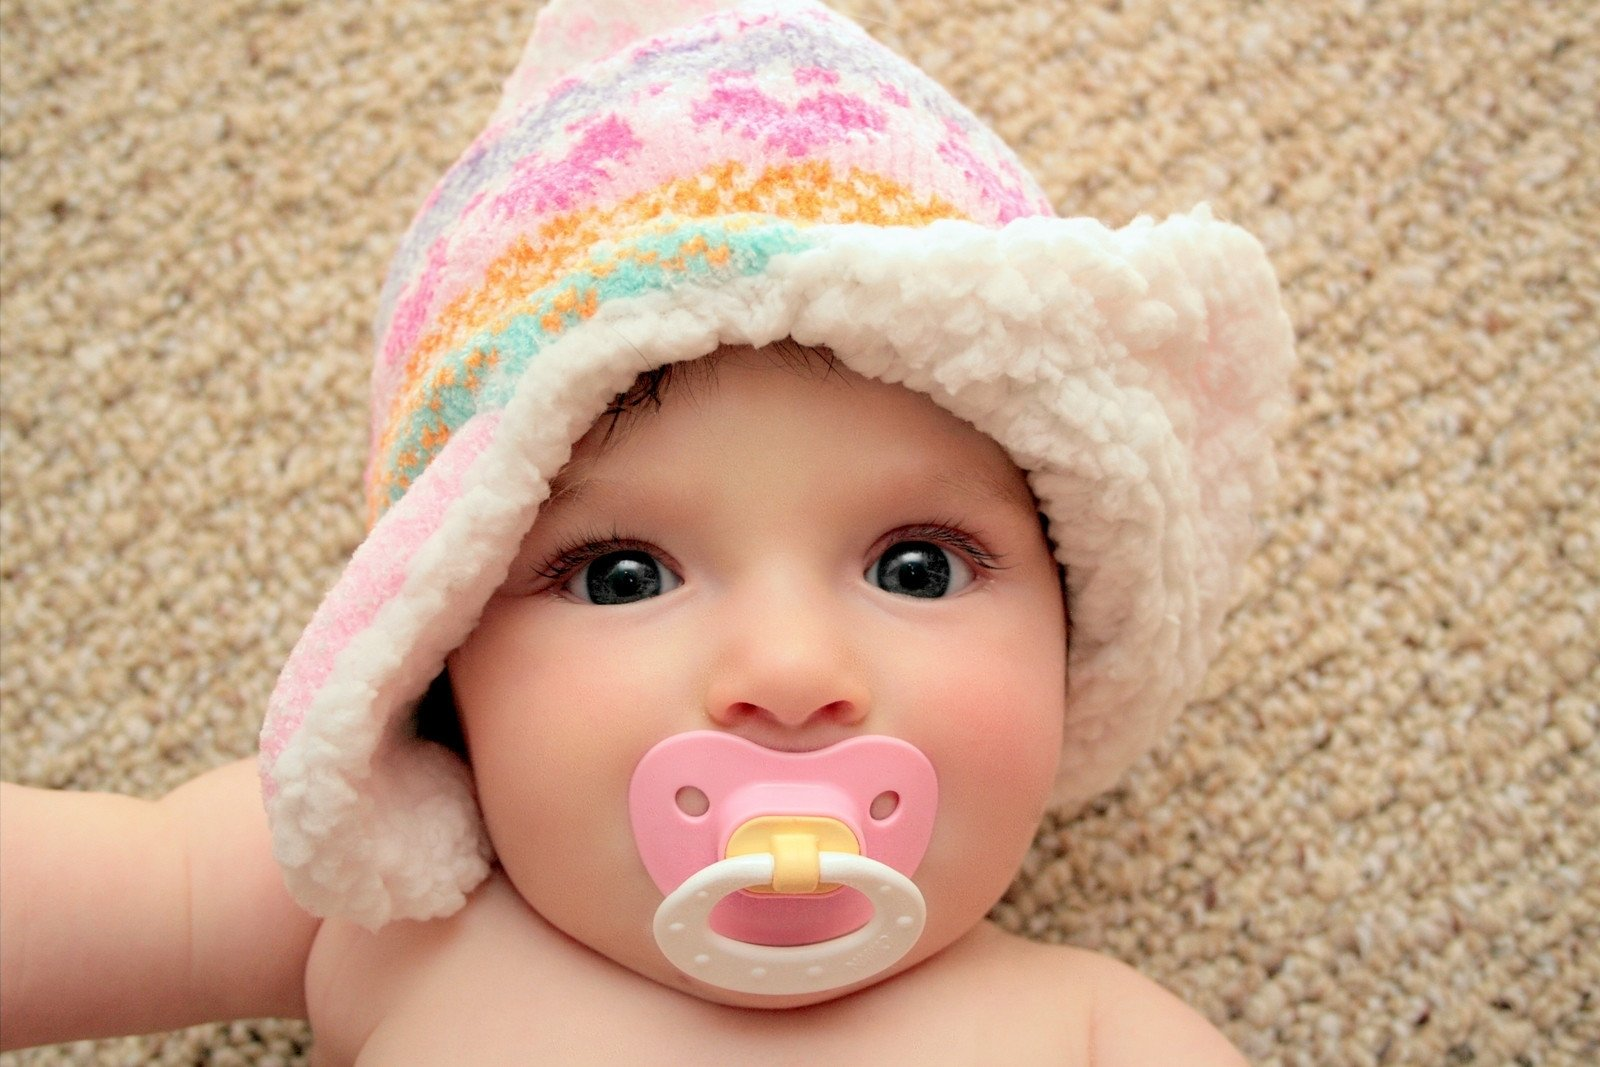 10 Attractive 4 Month Old Baby Picture Ideas 20 creative baby photography ideas 2020